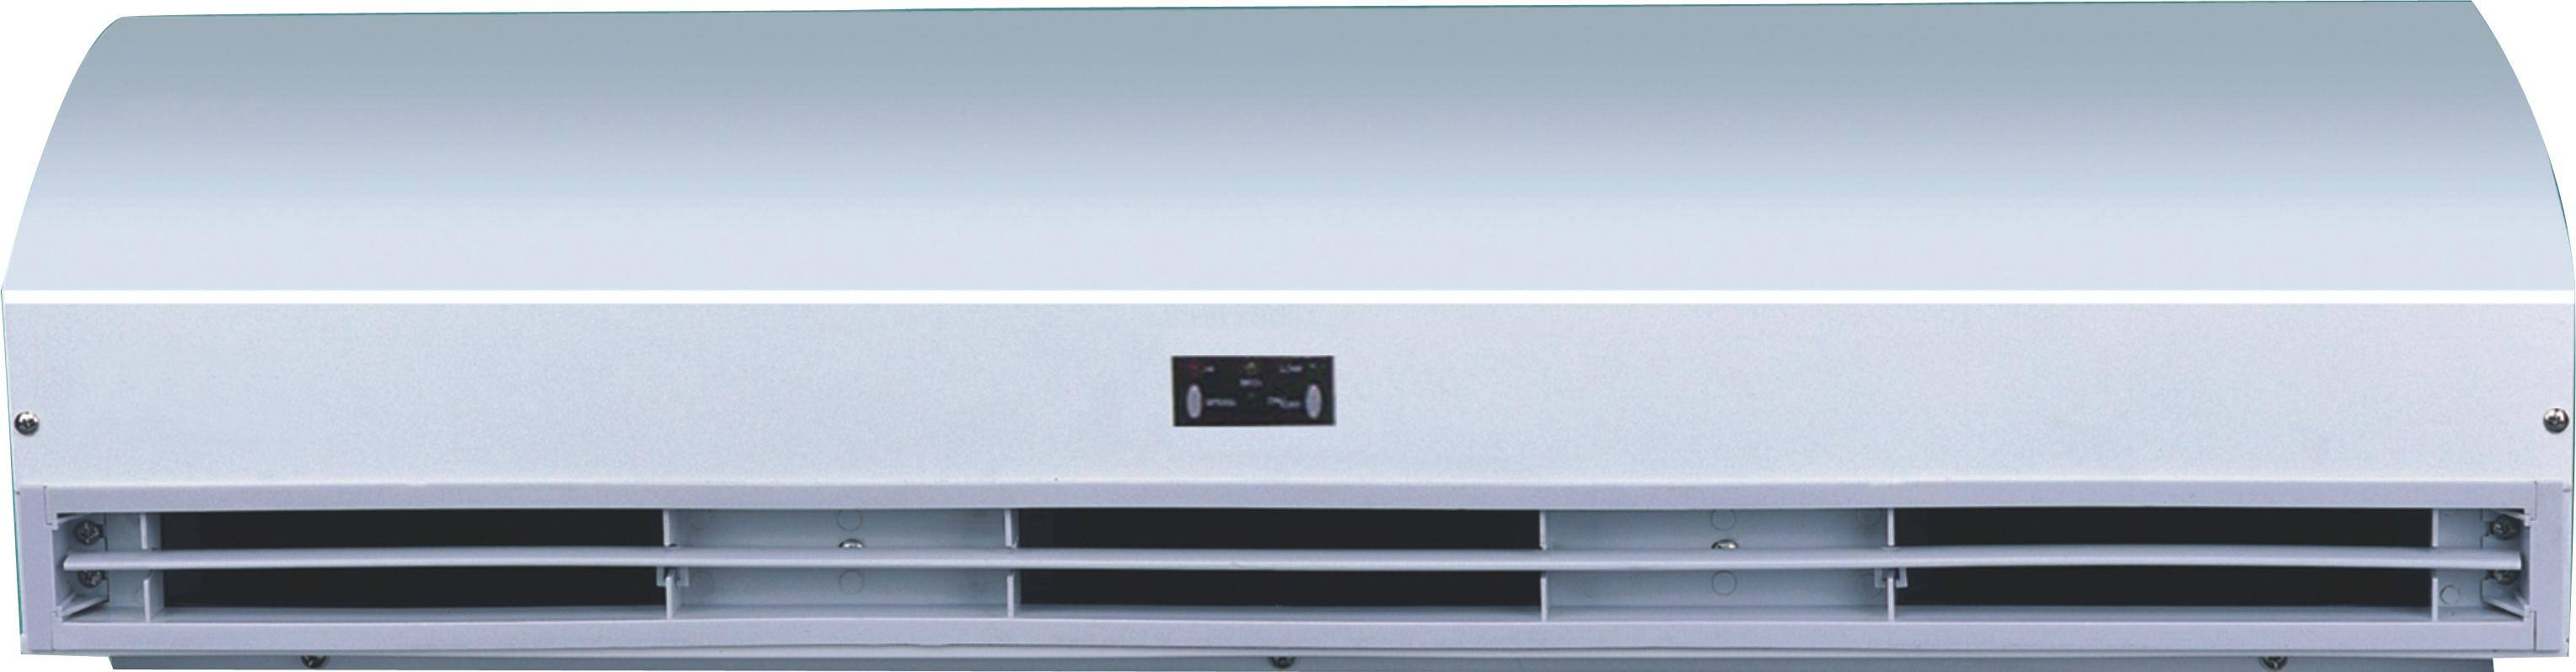 CENTRIFUGAL AIR CURTAIN - NORMAL/COLD WIND DY SERIES